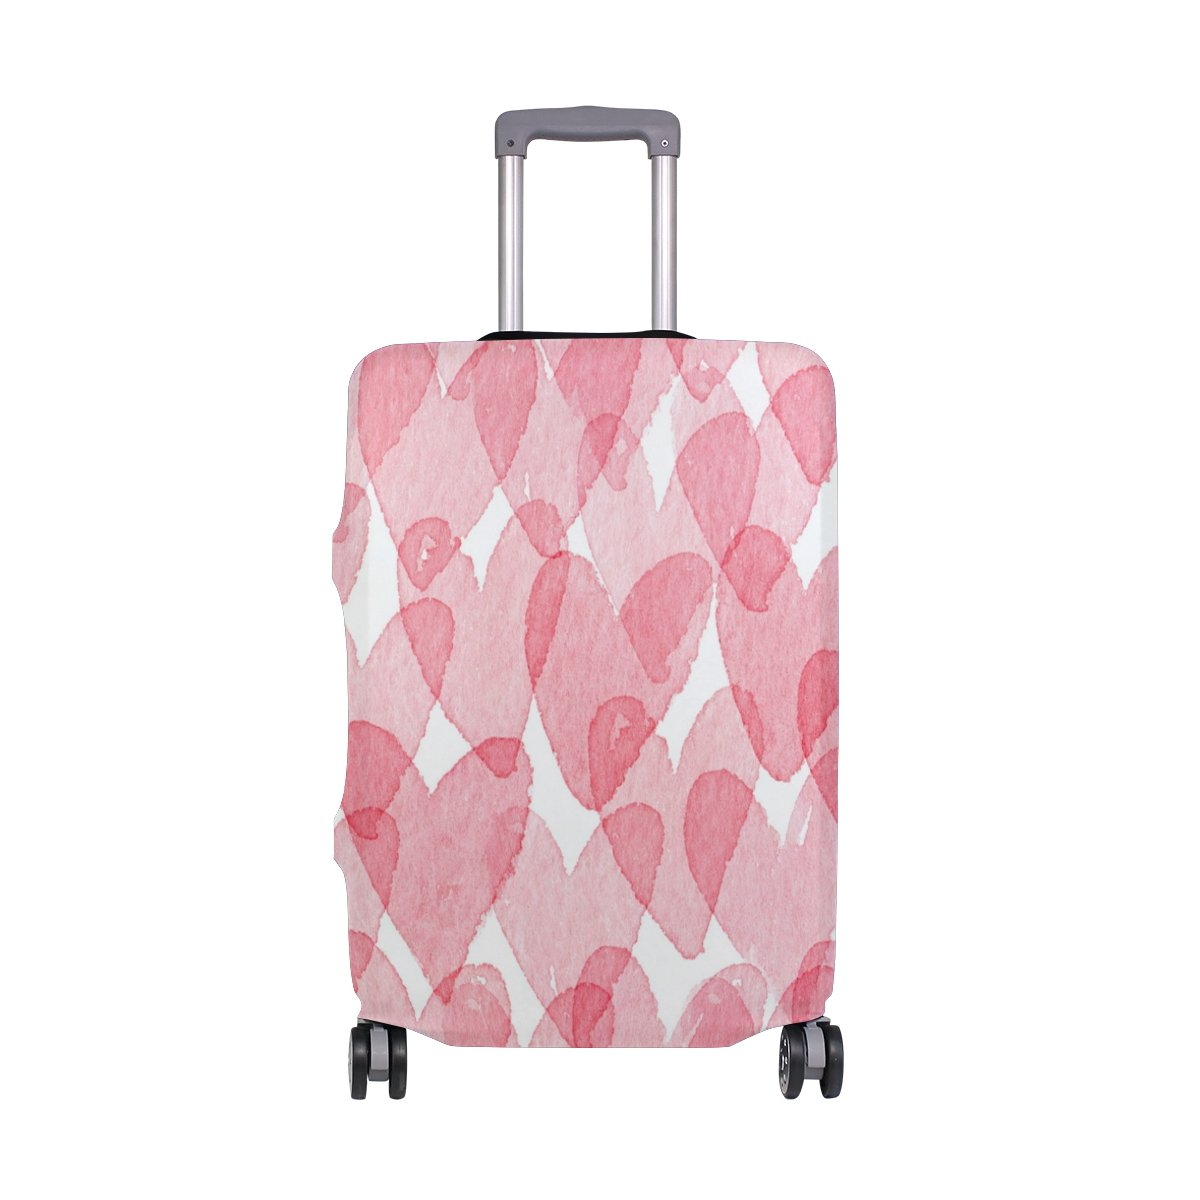 ALAZA Hearts Valentine's Day Wedding Luggage Cover Fits 24-26 Inch Suitcase Spandex Travel Protector M